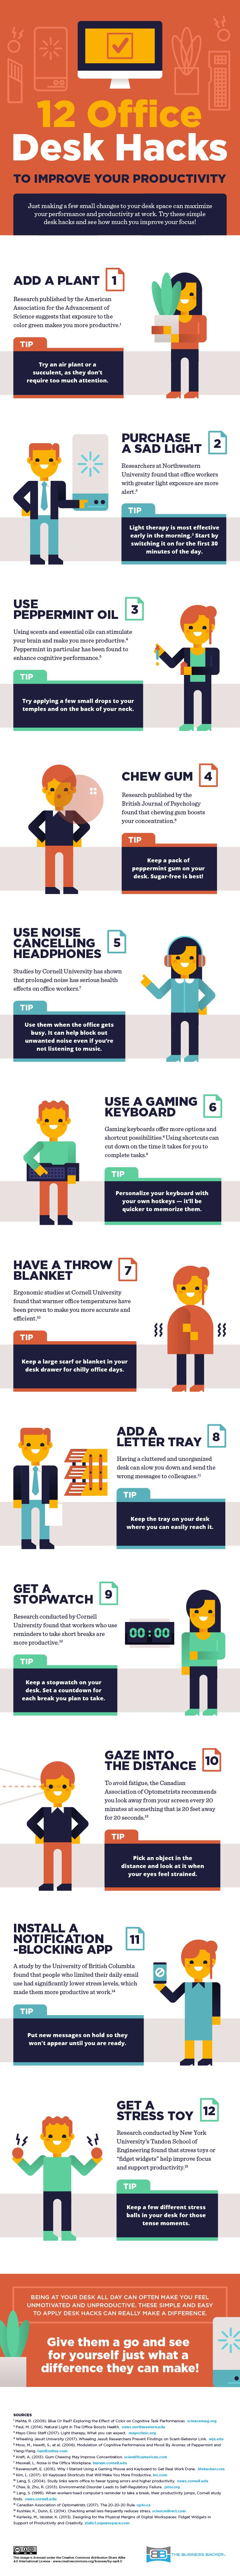 12 Office Desk Hacks to Improve Your Productivity #Infografía #Infographic #Office